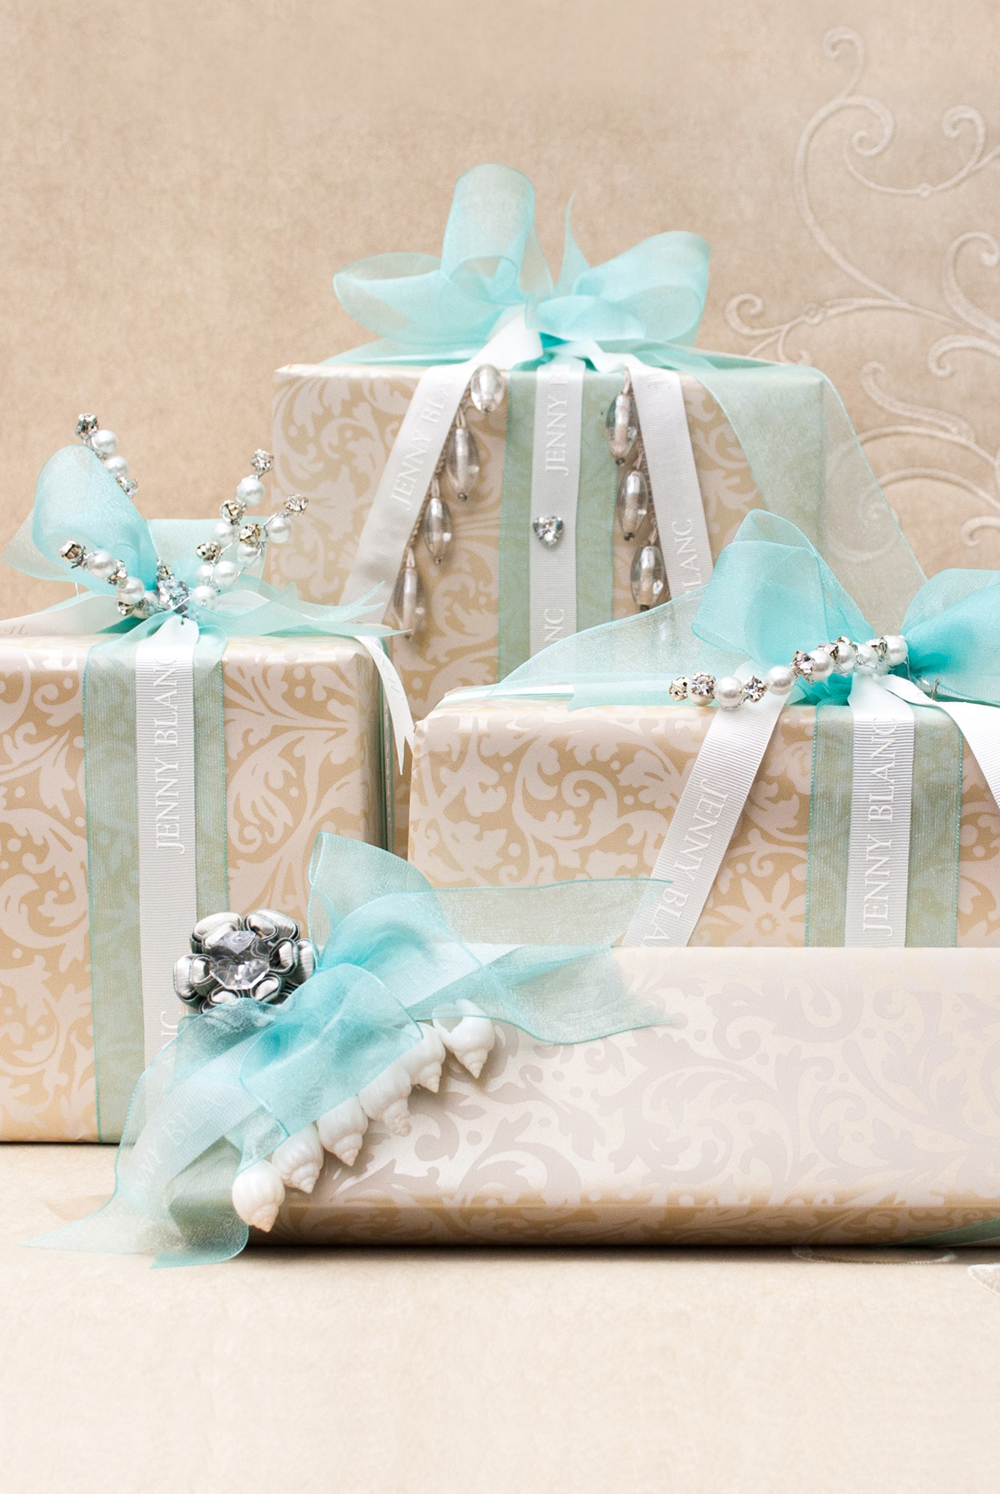 Jenny Blanc Blog - Wedding Gifts